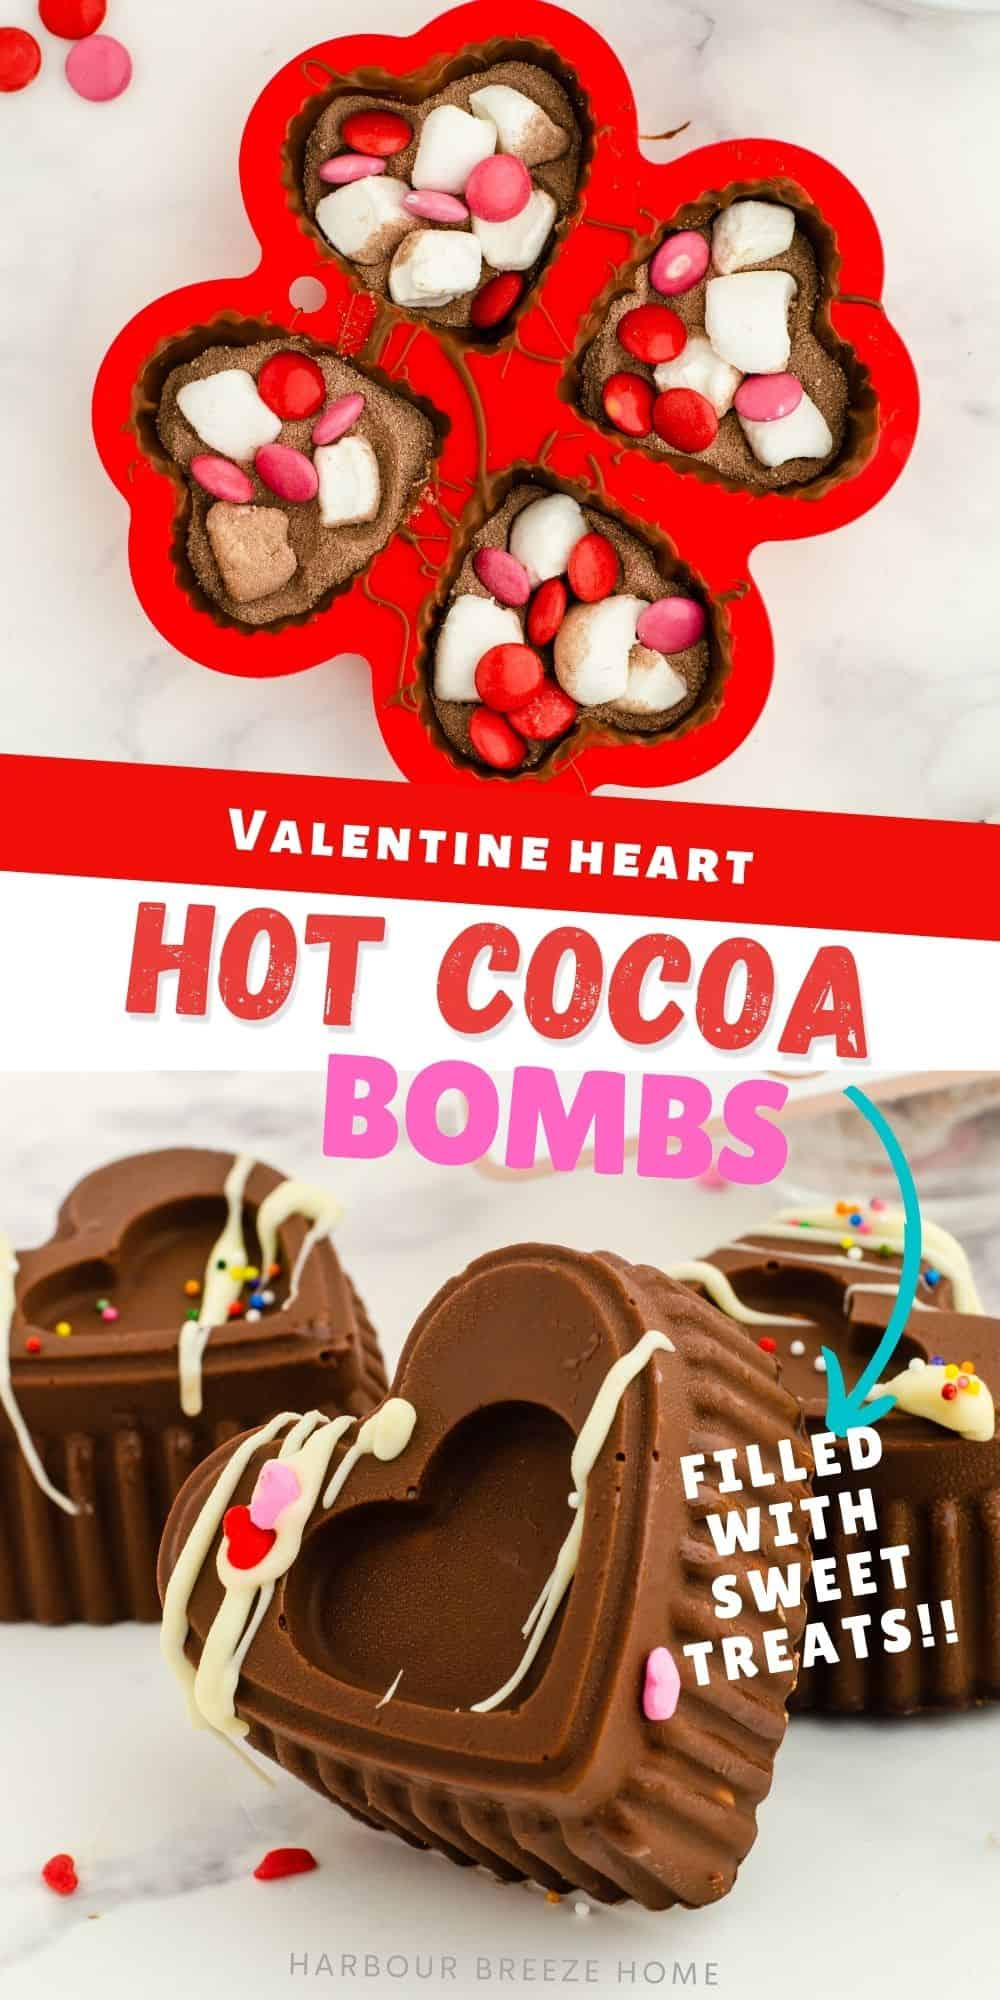 Heart Shaped Hot Chocolate Bombs for Valentine's Day